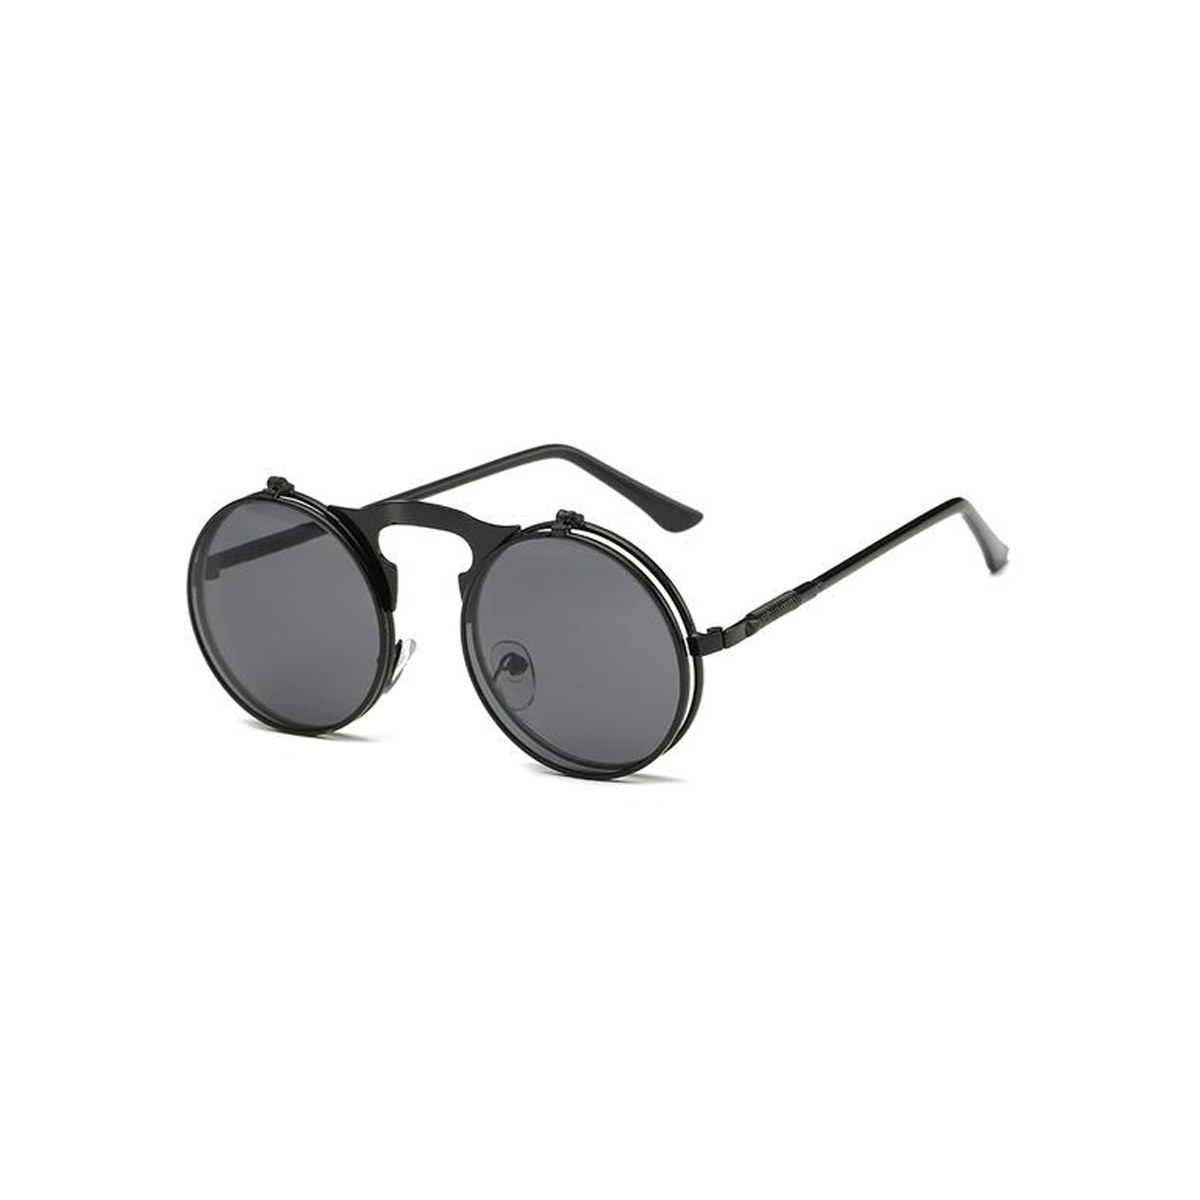 673cc34965 men vintage round steampunk sunglasses men small round flip up sunglasses  women retro metal silver cheap